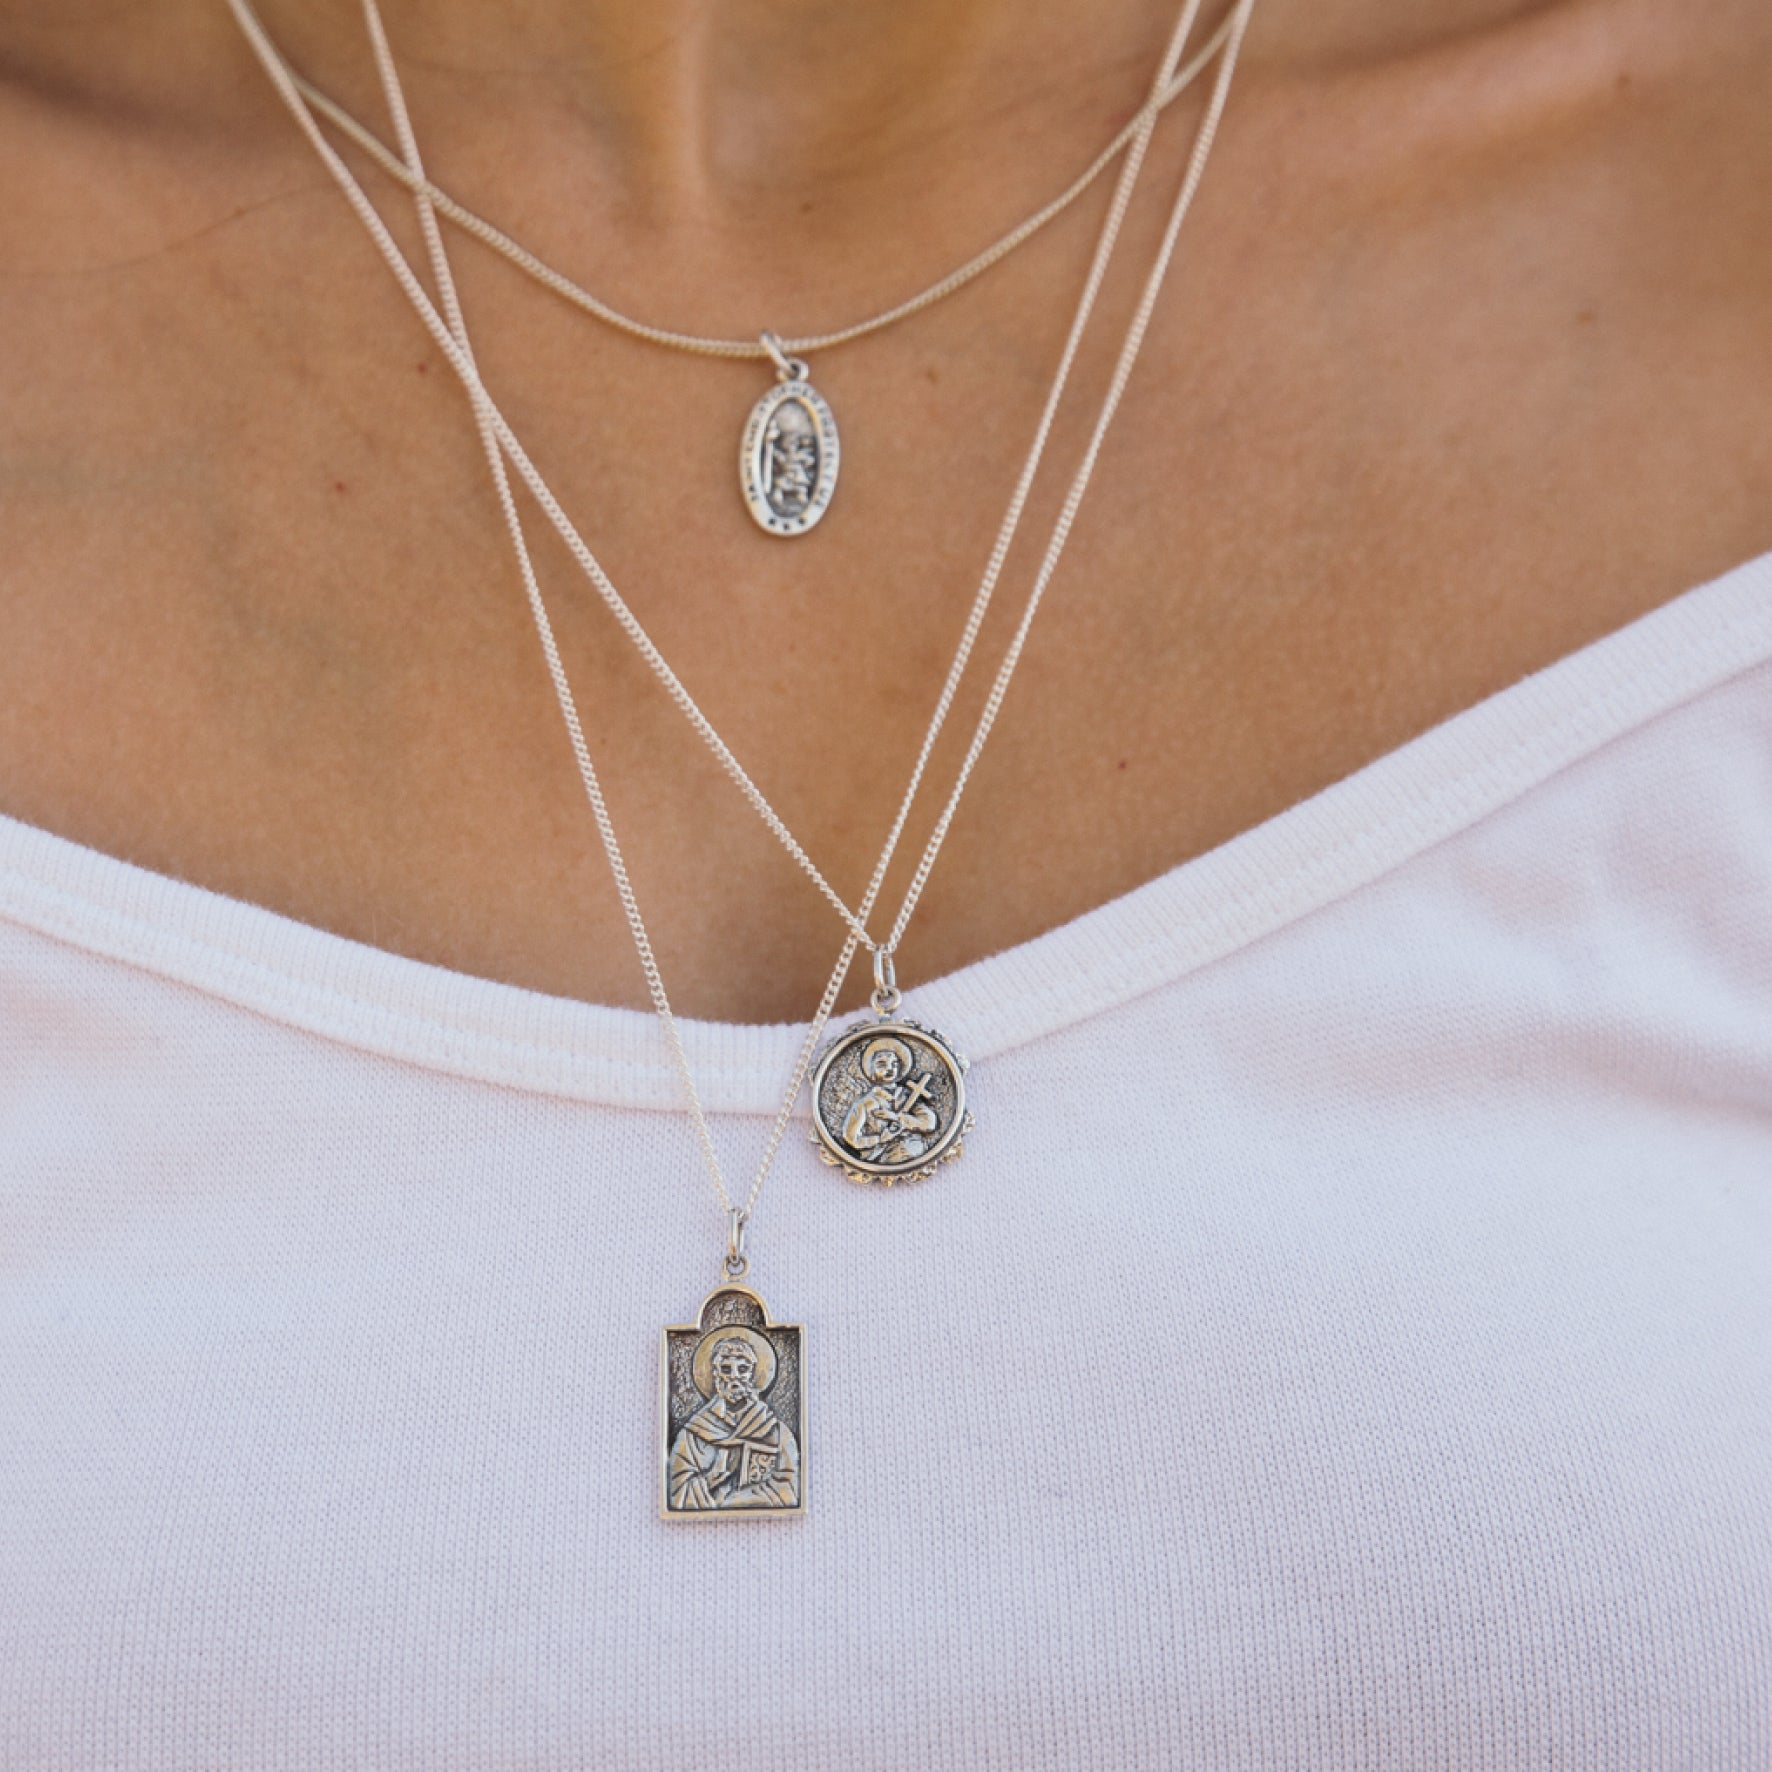 La Luna Rose Patron Saint Necklace Pendant from Recycled Sterling Silver